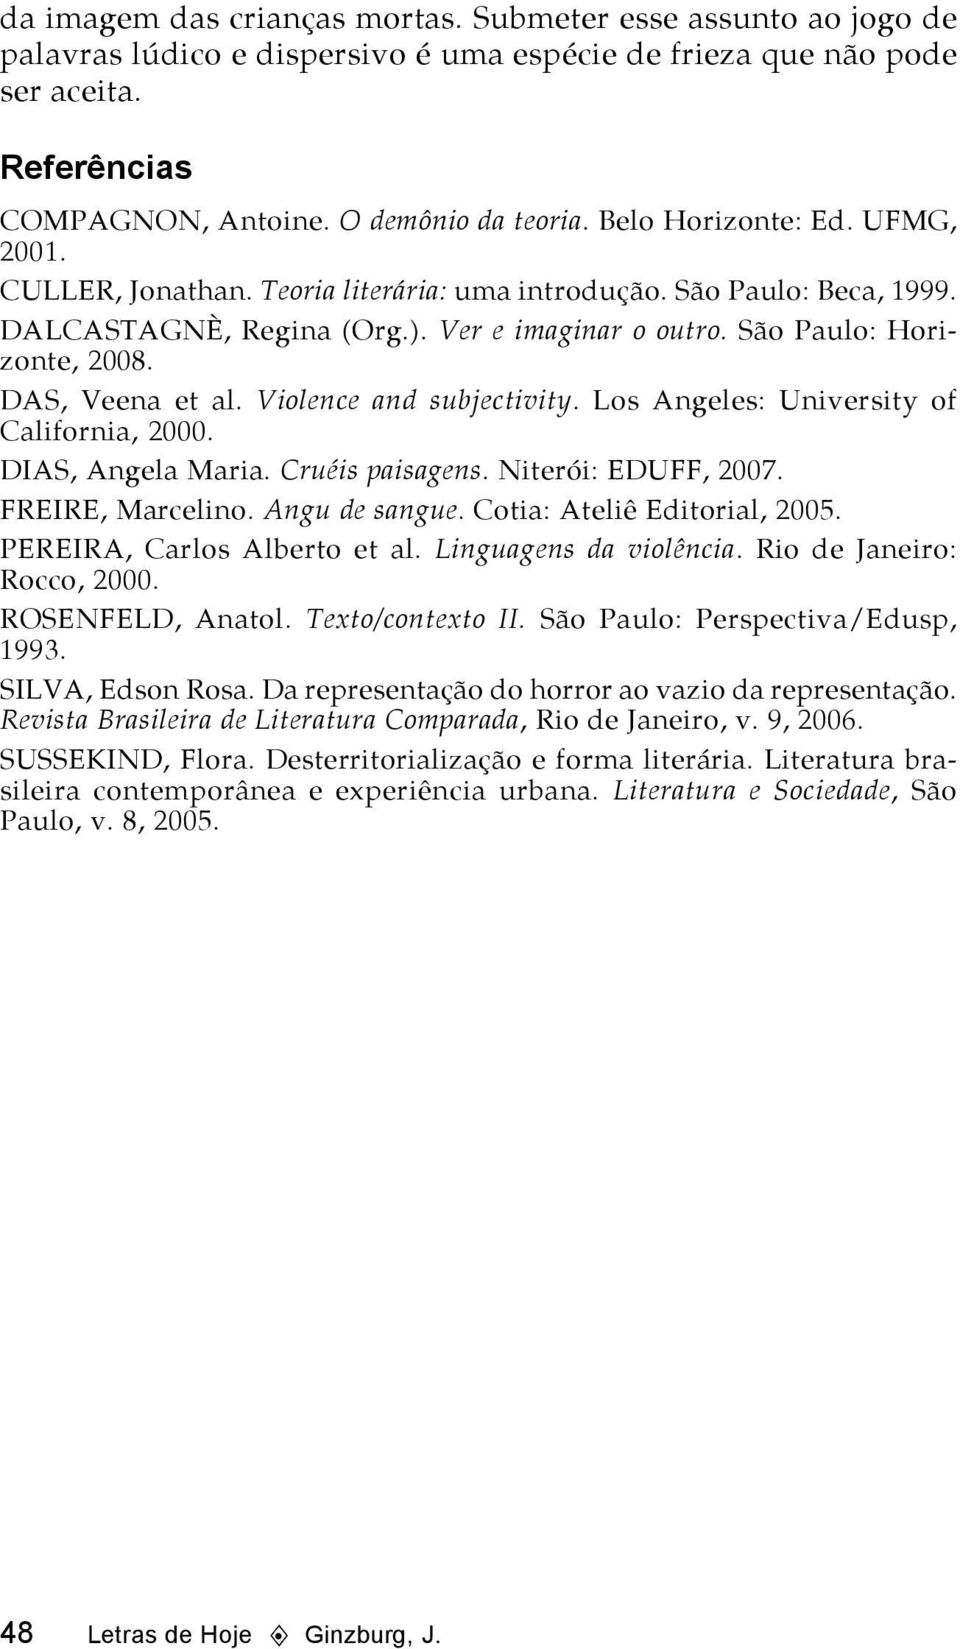 DAS, Veena et al. Violence and subjectivity. Los Angeles: University of California, 2000. DIAS, Angela Maria. Cruéis paisagens. Niterói: EDUFF, 2007. FREIRE, Marcelino. Angu de sangue.